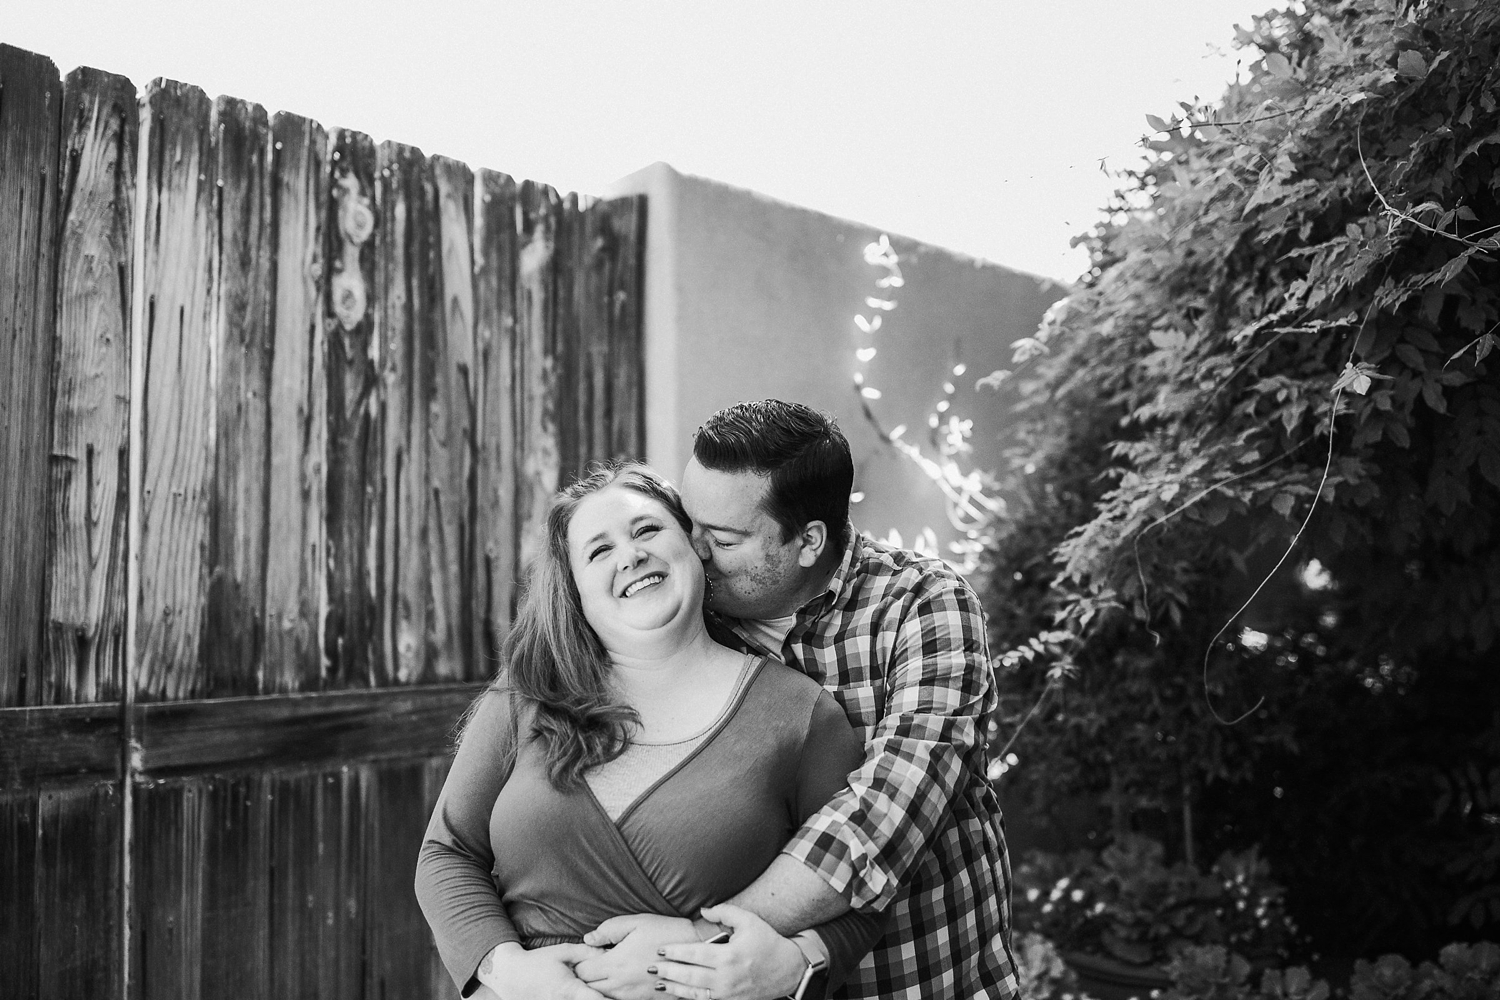 Alicia+lucia+photography+-+albuquerque+wedding+photographer+-+santa+fe+wedding+photography+-+new+mexico+wedding+photographer+-+new+mexico+engagement+-+albuquerque+engagement+-+new+mexico+spring+engagement_0003.jpg